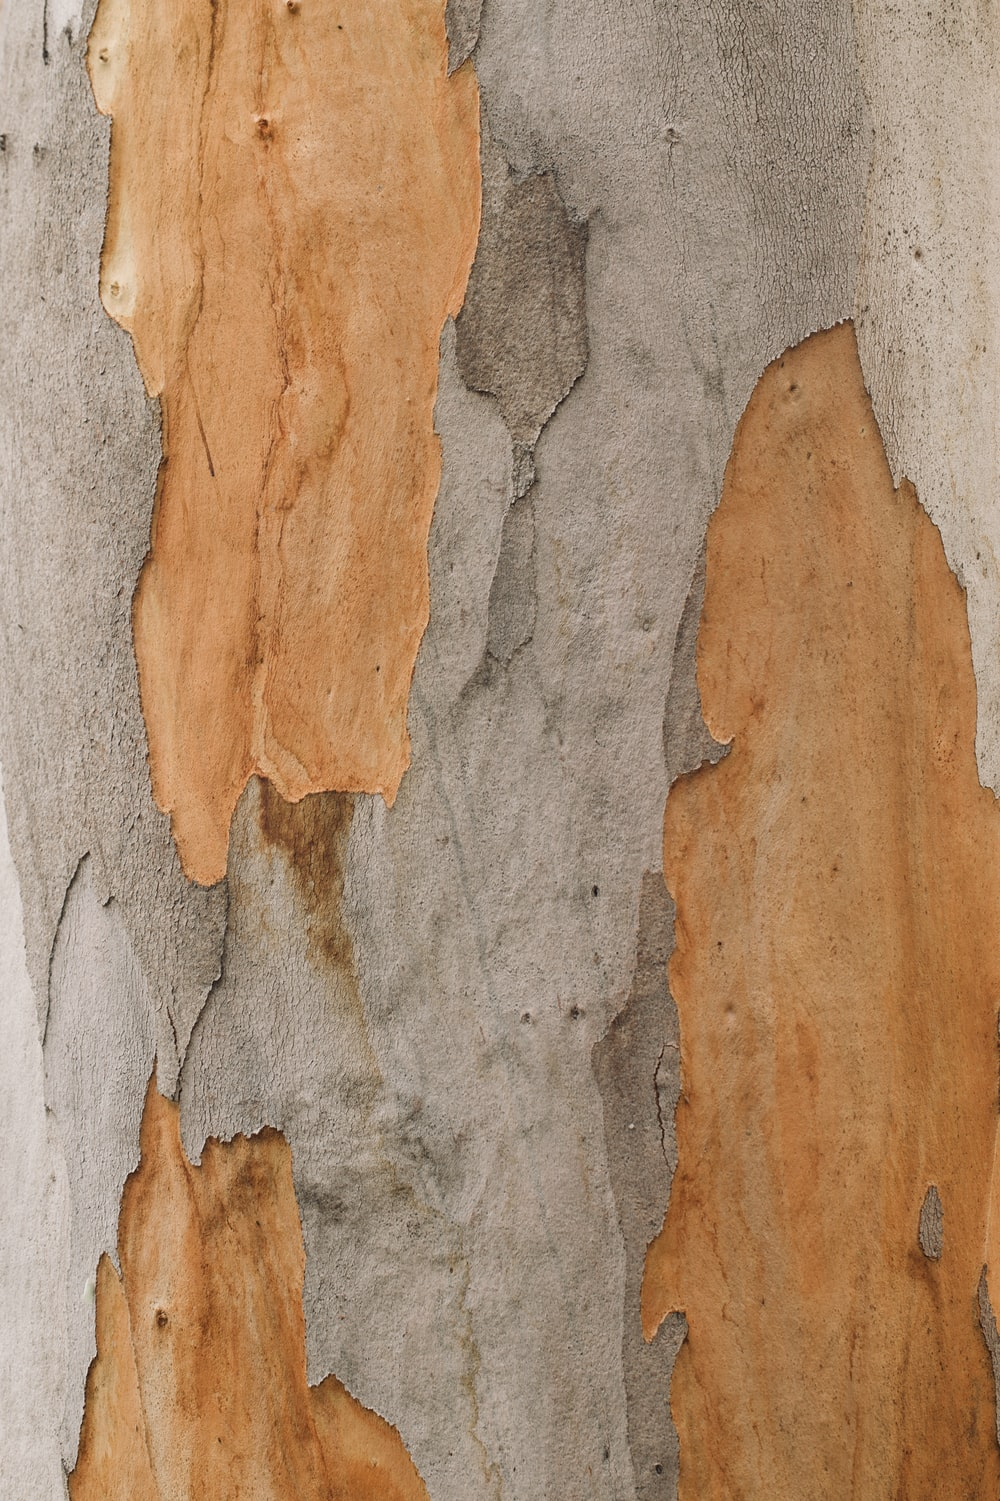 close up photo of tree trunk